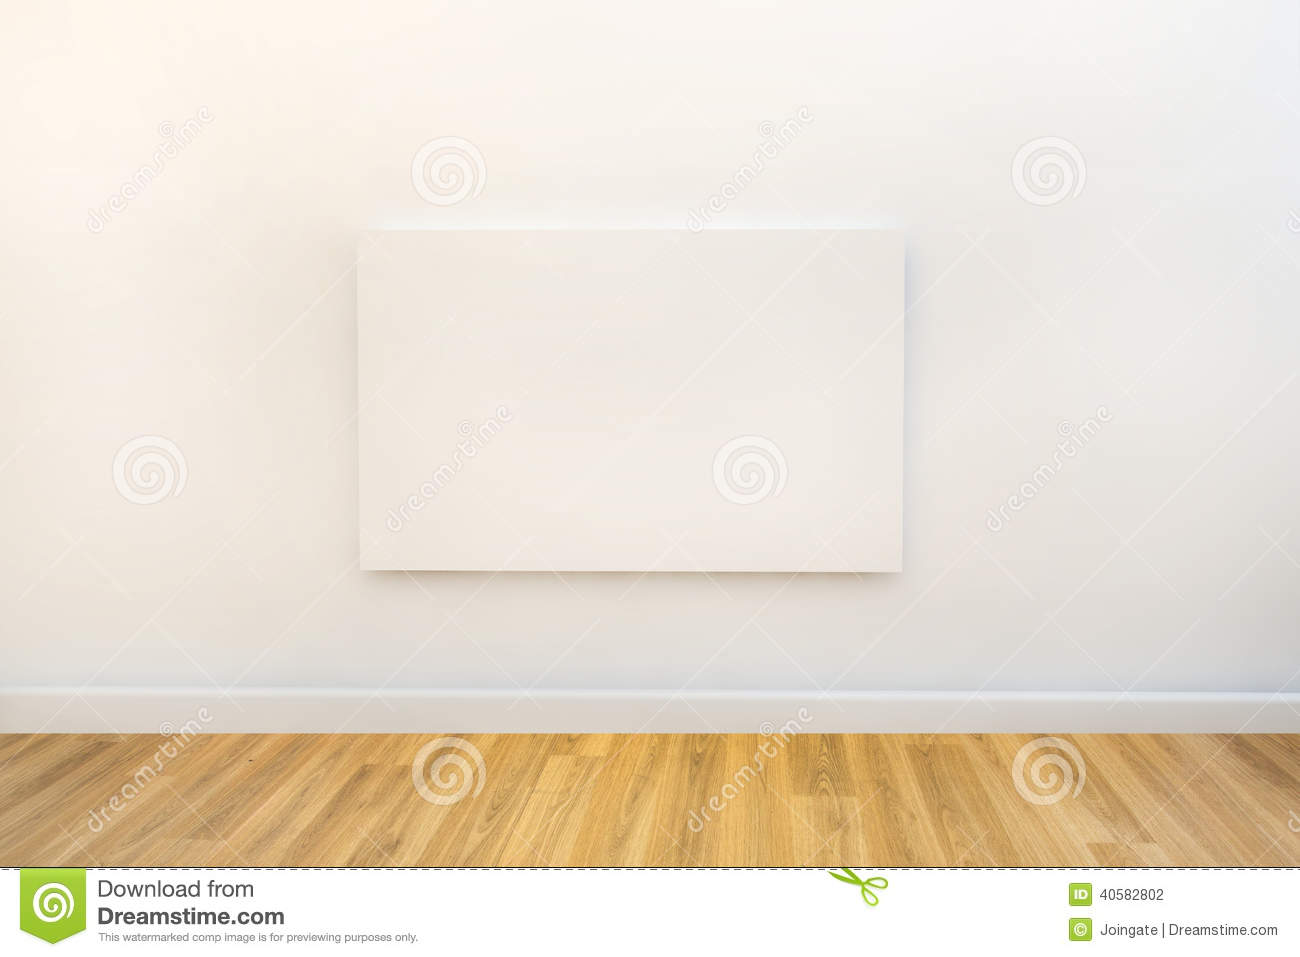 single blank canvas hanging on a white gallery or studio